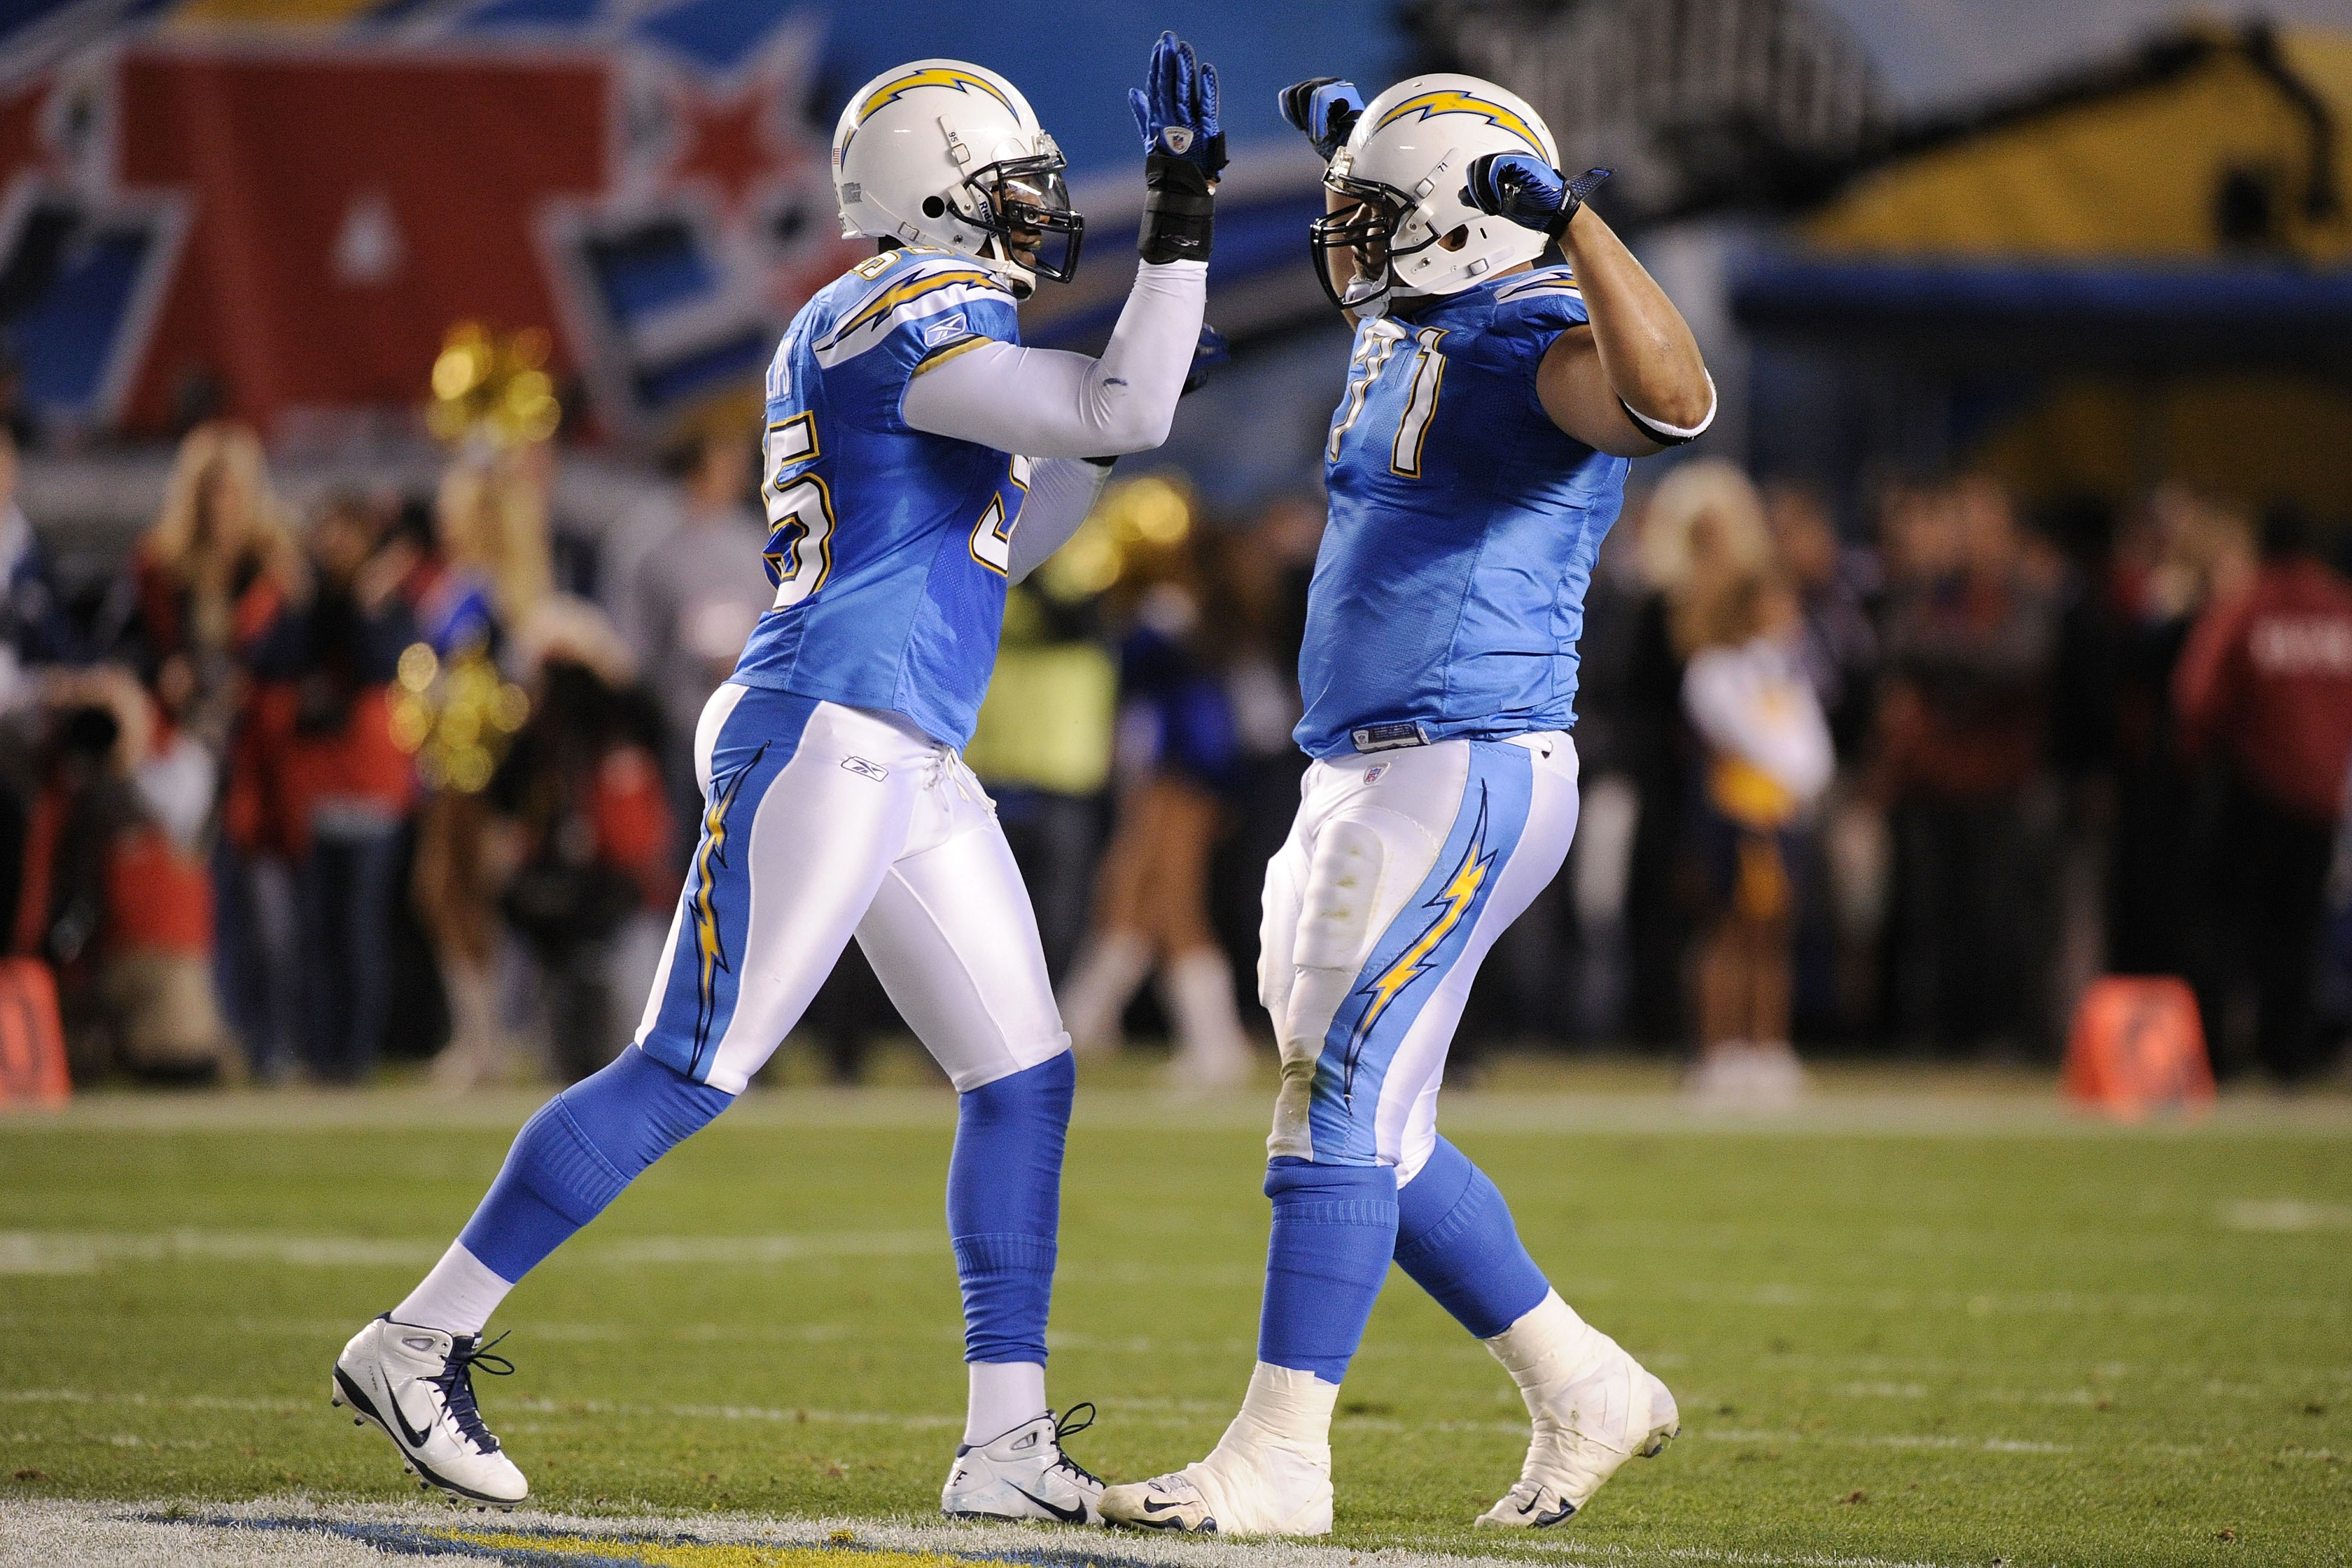 SAN DIEGO, CA - DECEMBER 16:  Defensive tackle Antonio Garay #71 of the San Diego Chargers celebrates with Shaun Philips #95 after a sack of quarterback Alex Smith #11 of the San Francisco 49ers in the second quarter at Qualcomm Stadium on December 16, 20